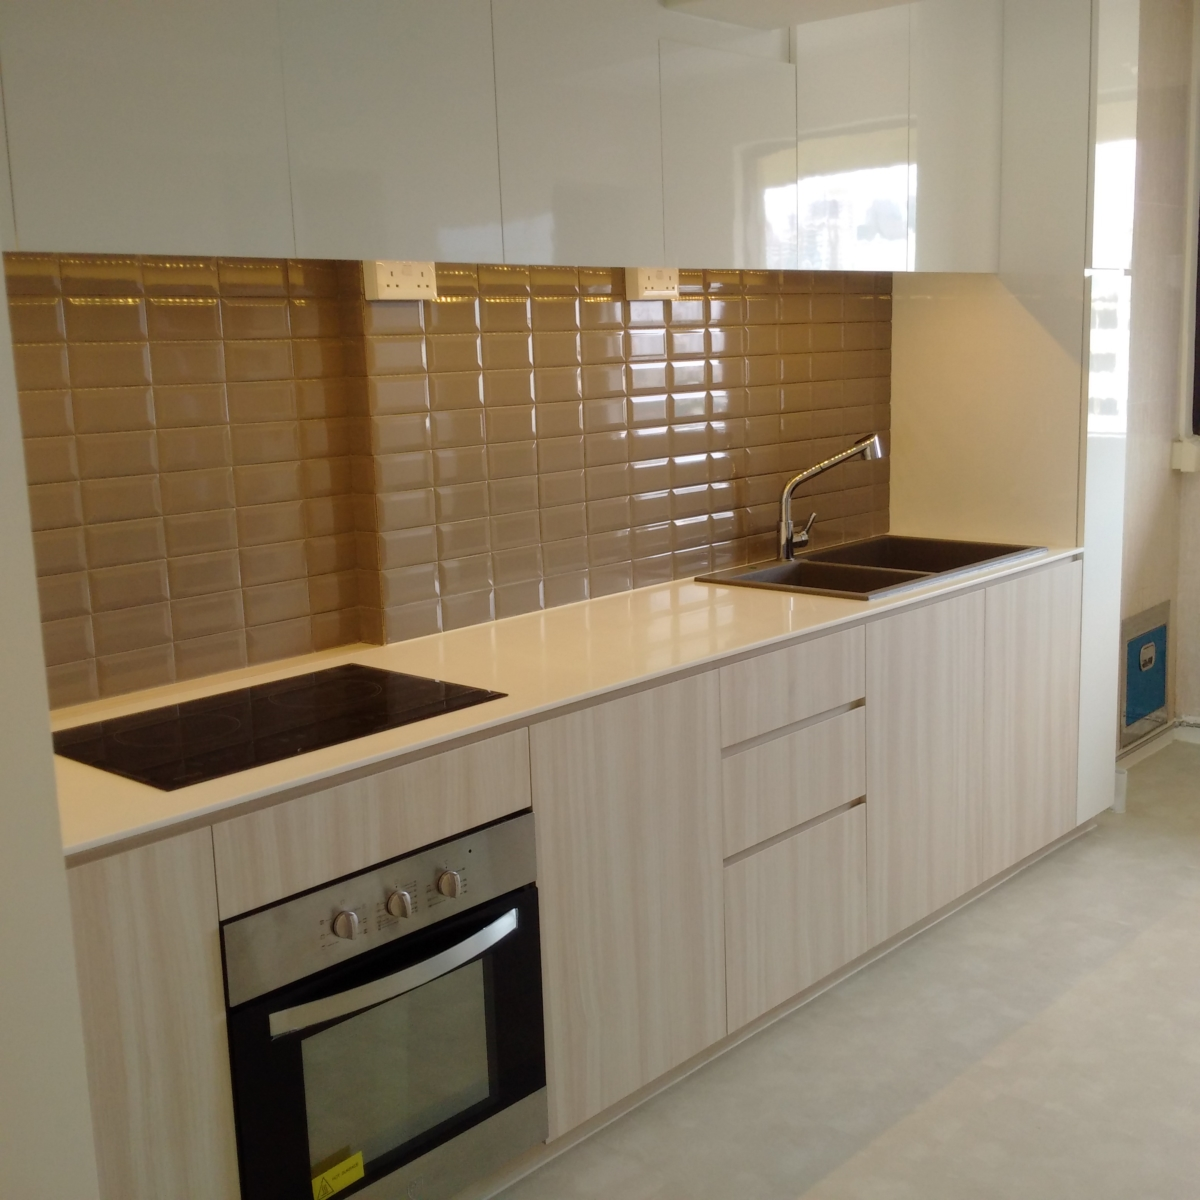 HDB Renovation at Toa Payoh by Brilliance - kitchen interior